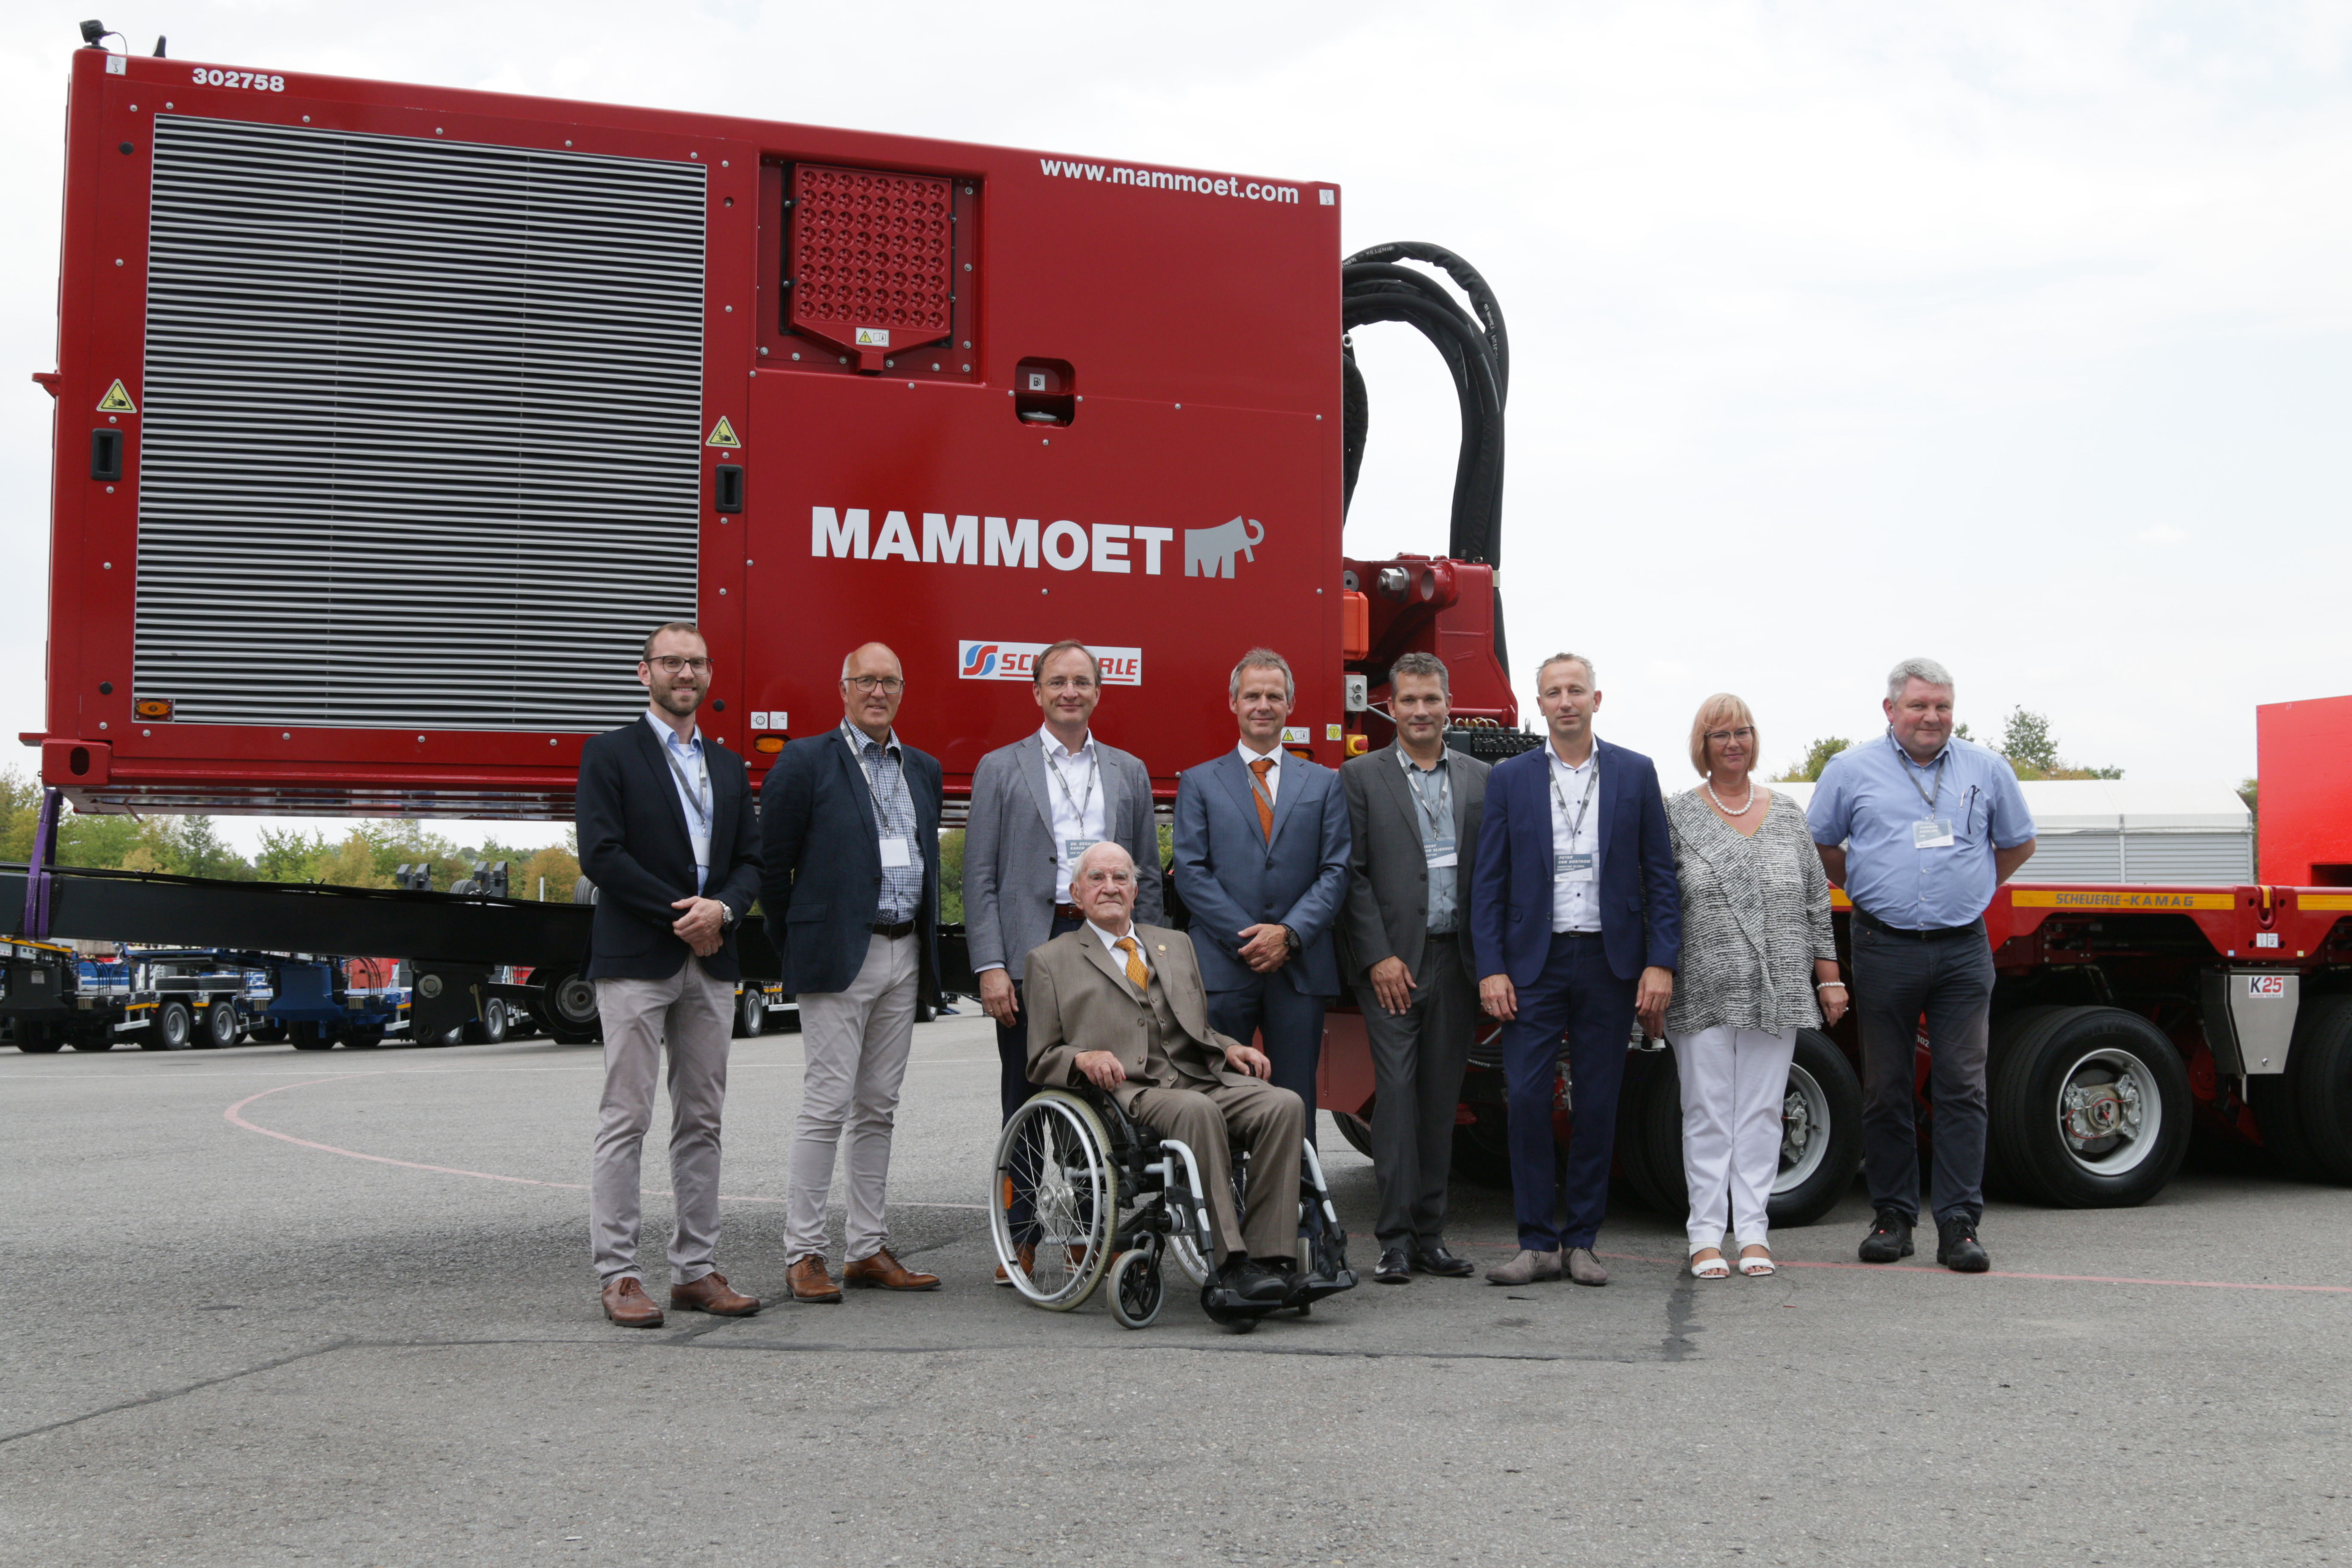 Development partner Mammoet and Scheuerle unveiled the revolutionary powered trailer system TPA. From left to right: Key Account Manager Rainer Sasse, Managing Director TII Sales Bernd Schwengsbier, CEO TII Group Dr. Gerald Karch, (in front) Owner TII Group Otto Rettenmaier; COO Mammoet Jan Kleijn, Director Operations Worldwide Mammoet, Joery van Vlierden, Global Equipment Mammoet Peter van Oostrom, Owner and Managing Director TII Group Susanne Rettenmaier, Head of Department Construction & Development TII Thomas Fiedler